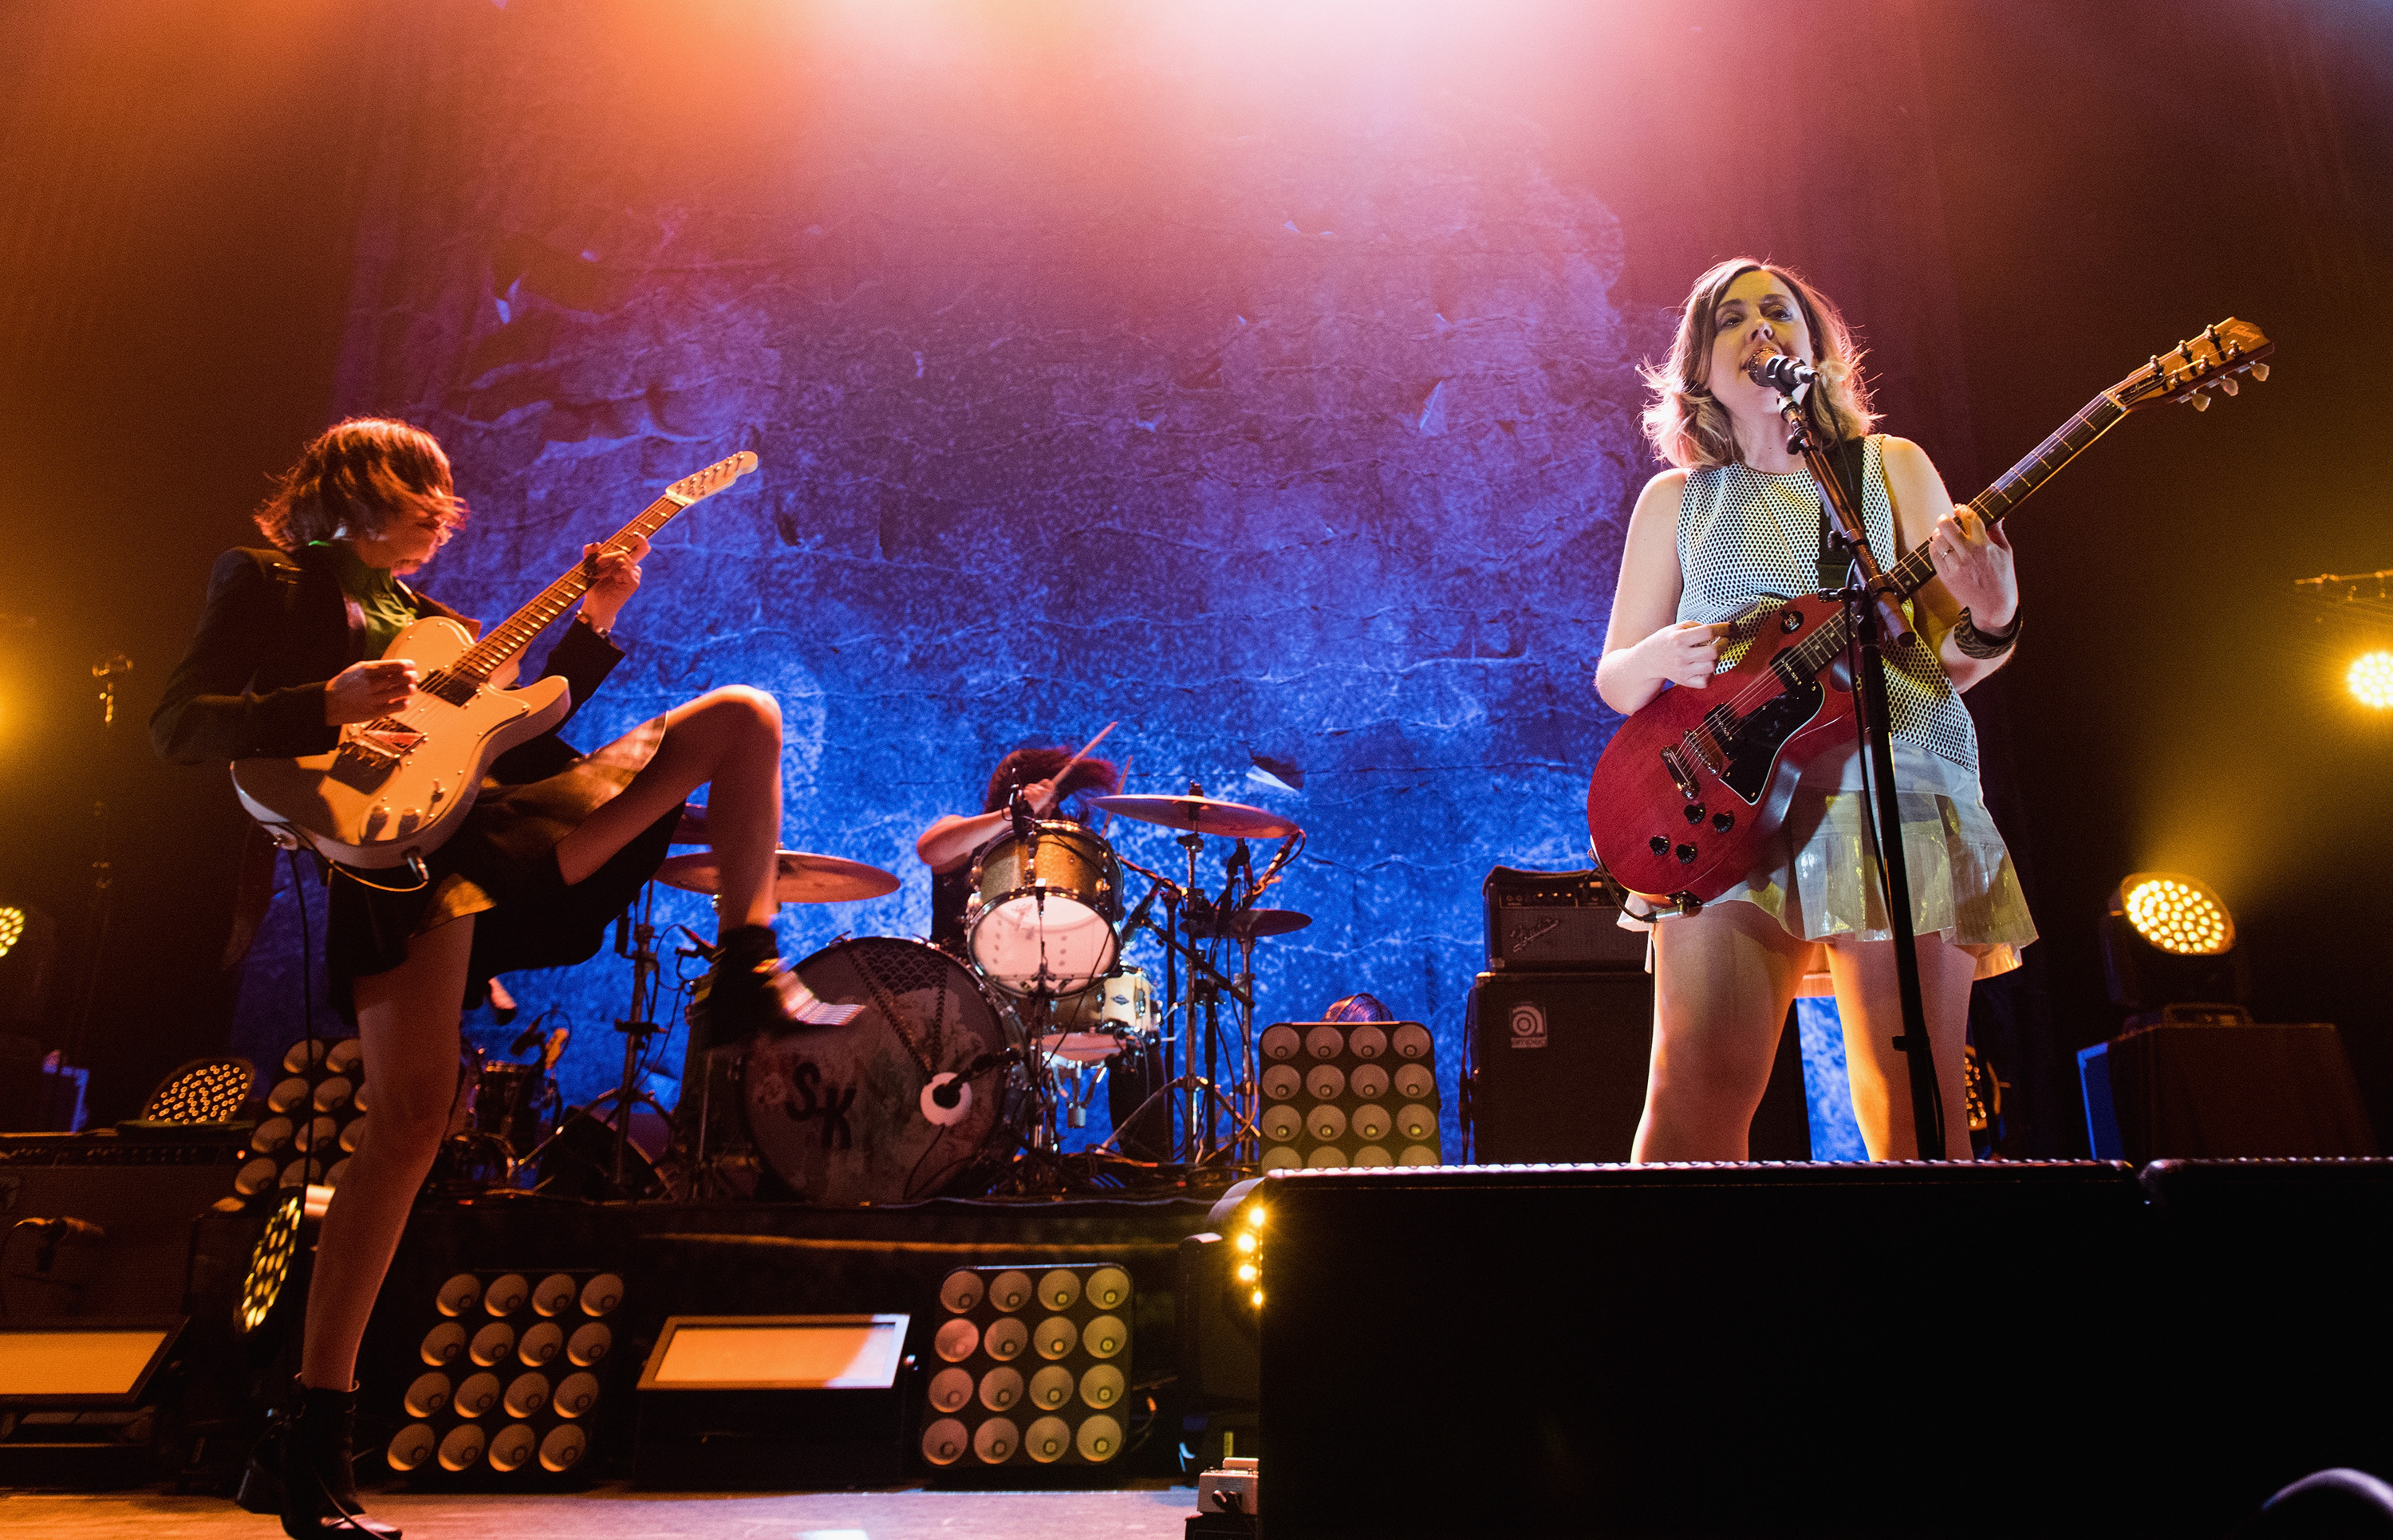 ATLANTA, GA - APRIL 21:  (L-R) Carrie Brownstein, Janet Weiss, and Corin Tucker of Sleater-Kinney perform on stage at The Tab